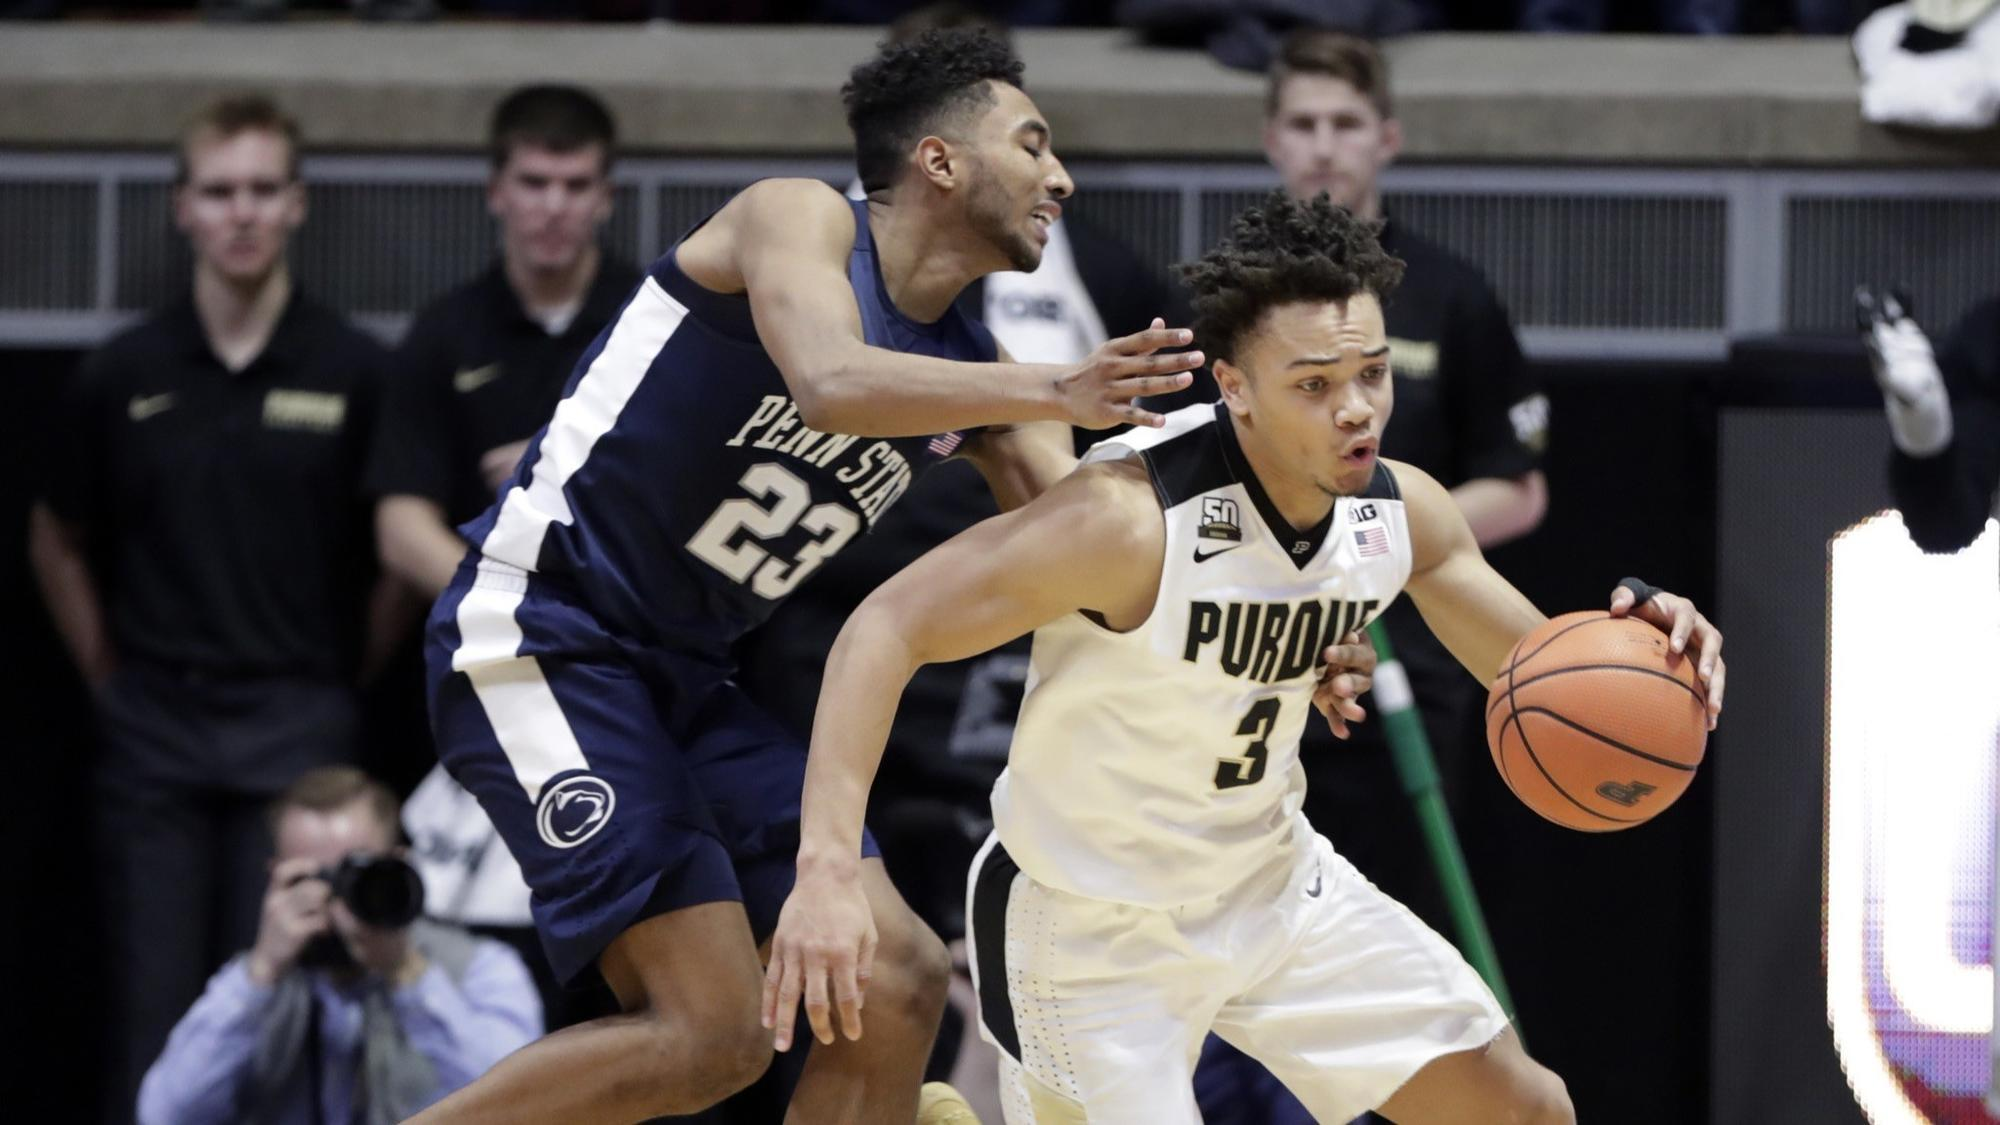 25ad66a2057 By any name  Purdue s Carsen Edwards tabbed as Big Ten s preseason Player  of the Year